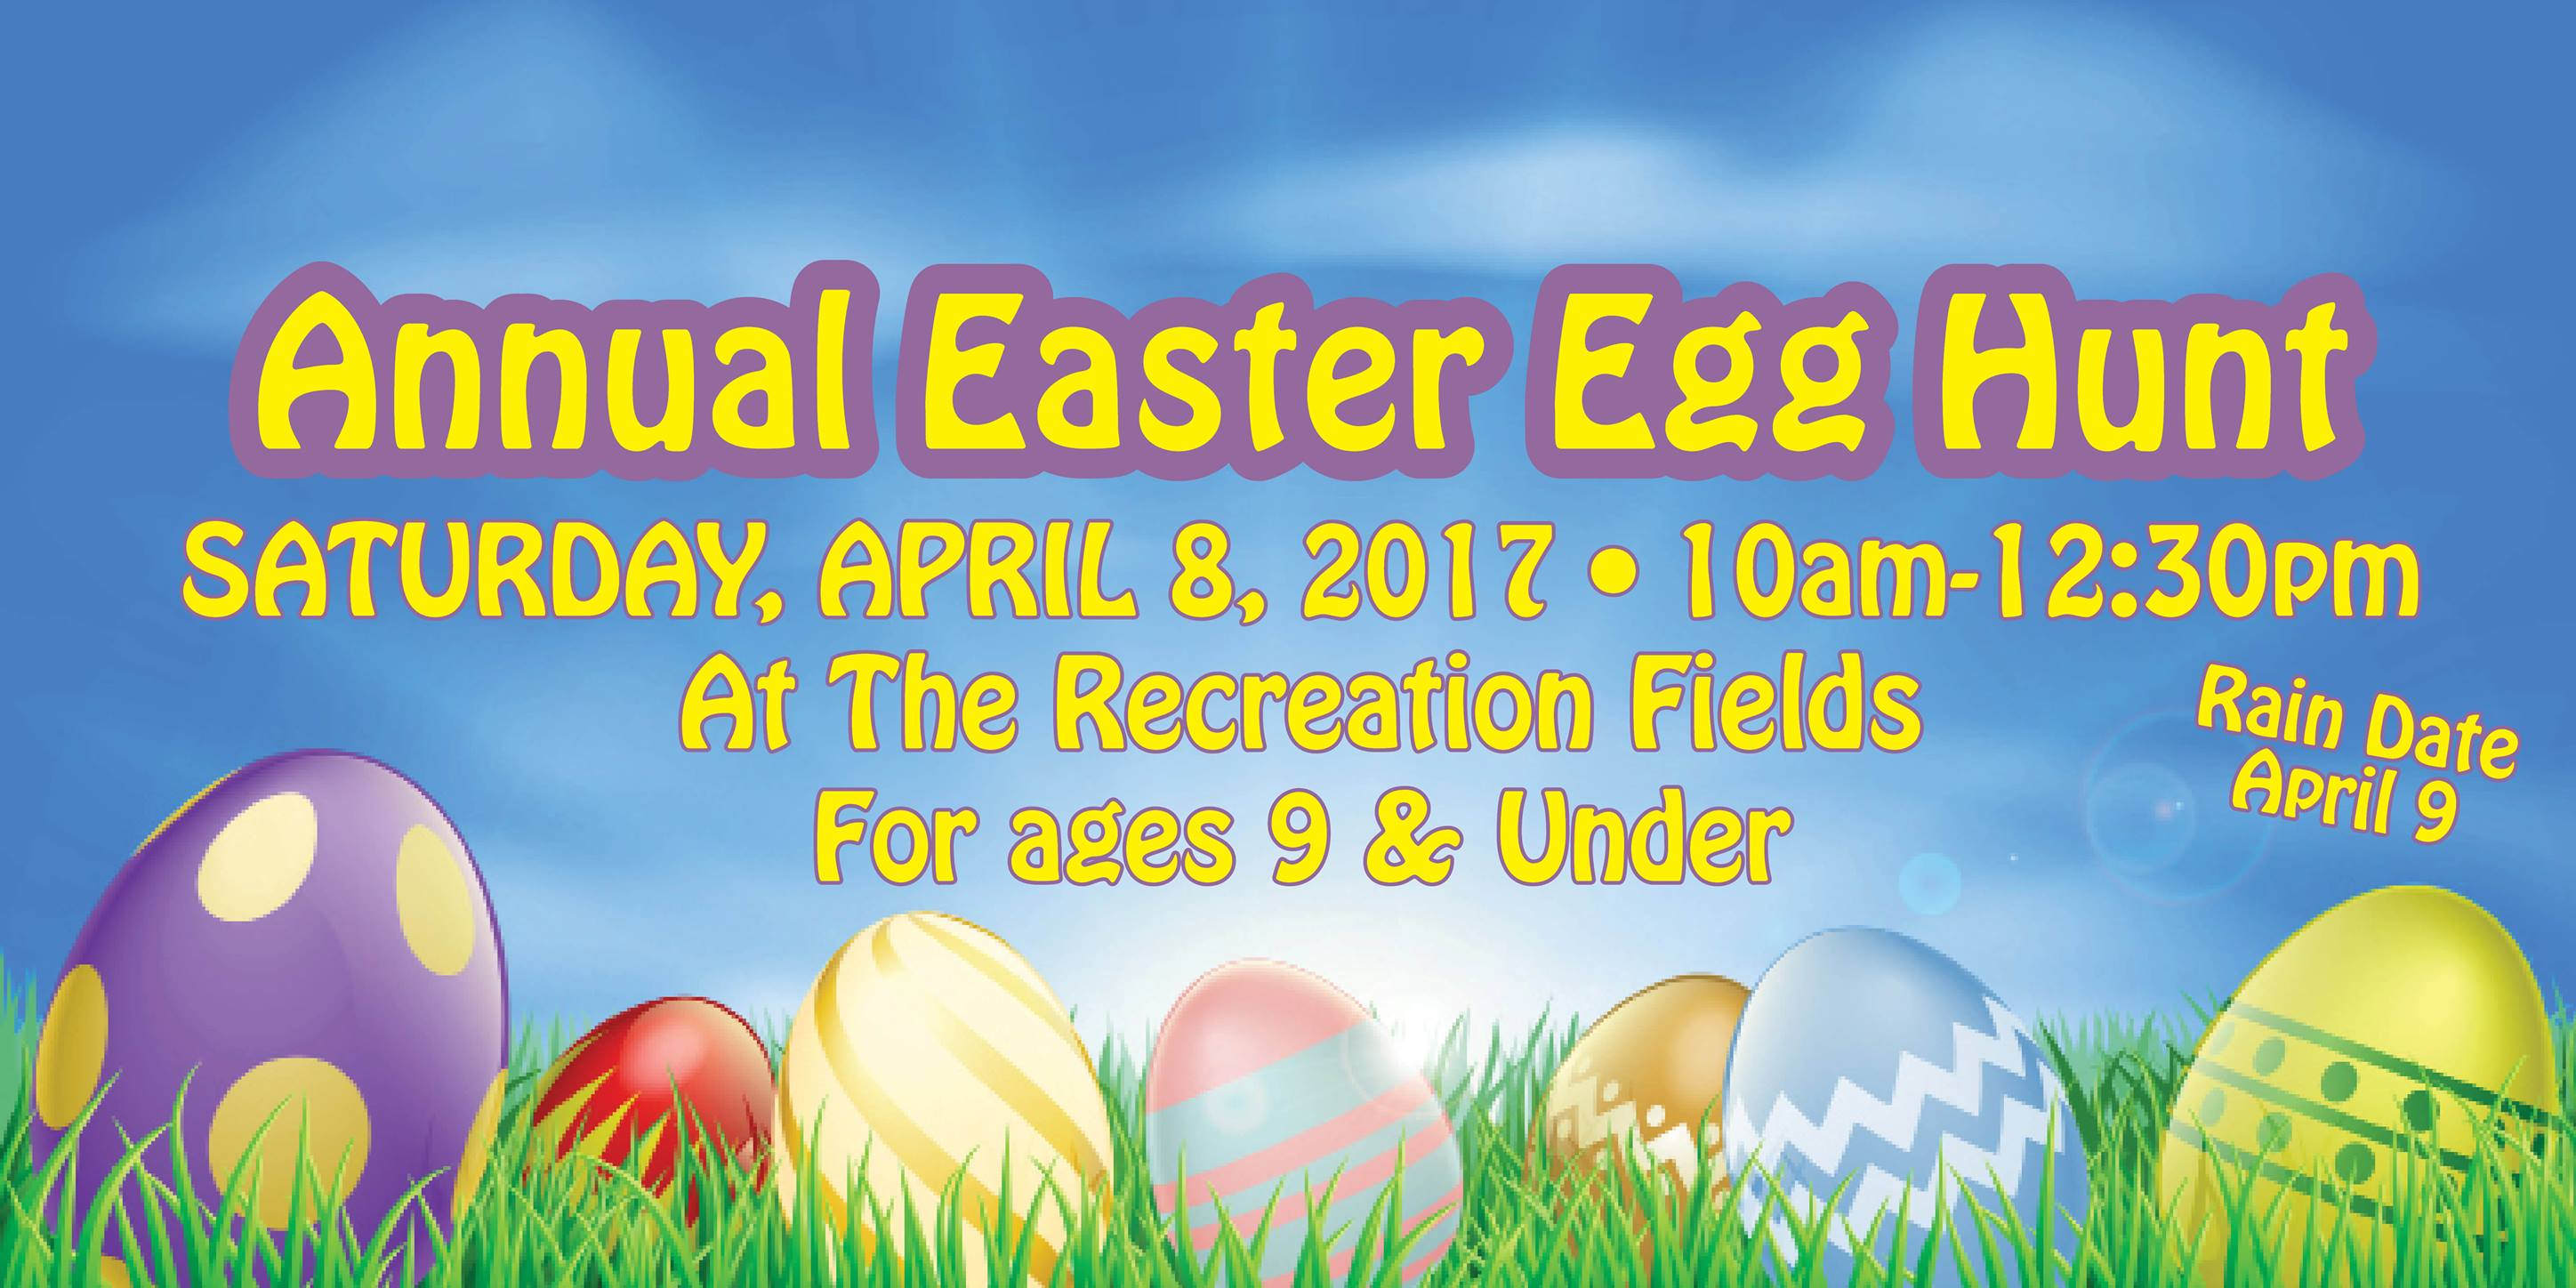 Easter events on long island 2017 momeefriendsli prizes will be awarded in each age group children should bring their own baskets to gather eggs rain date for the egg hunt will be sunday april 9 2017 negle Image collections